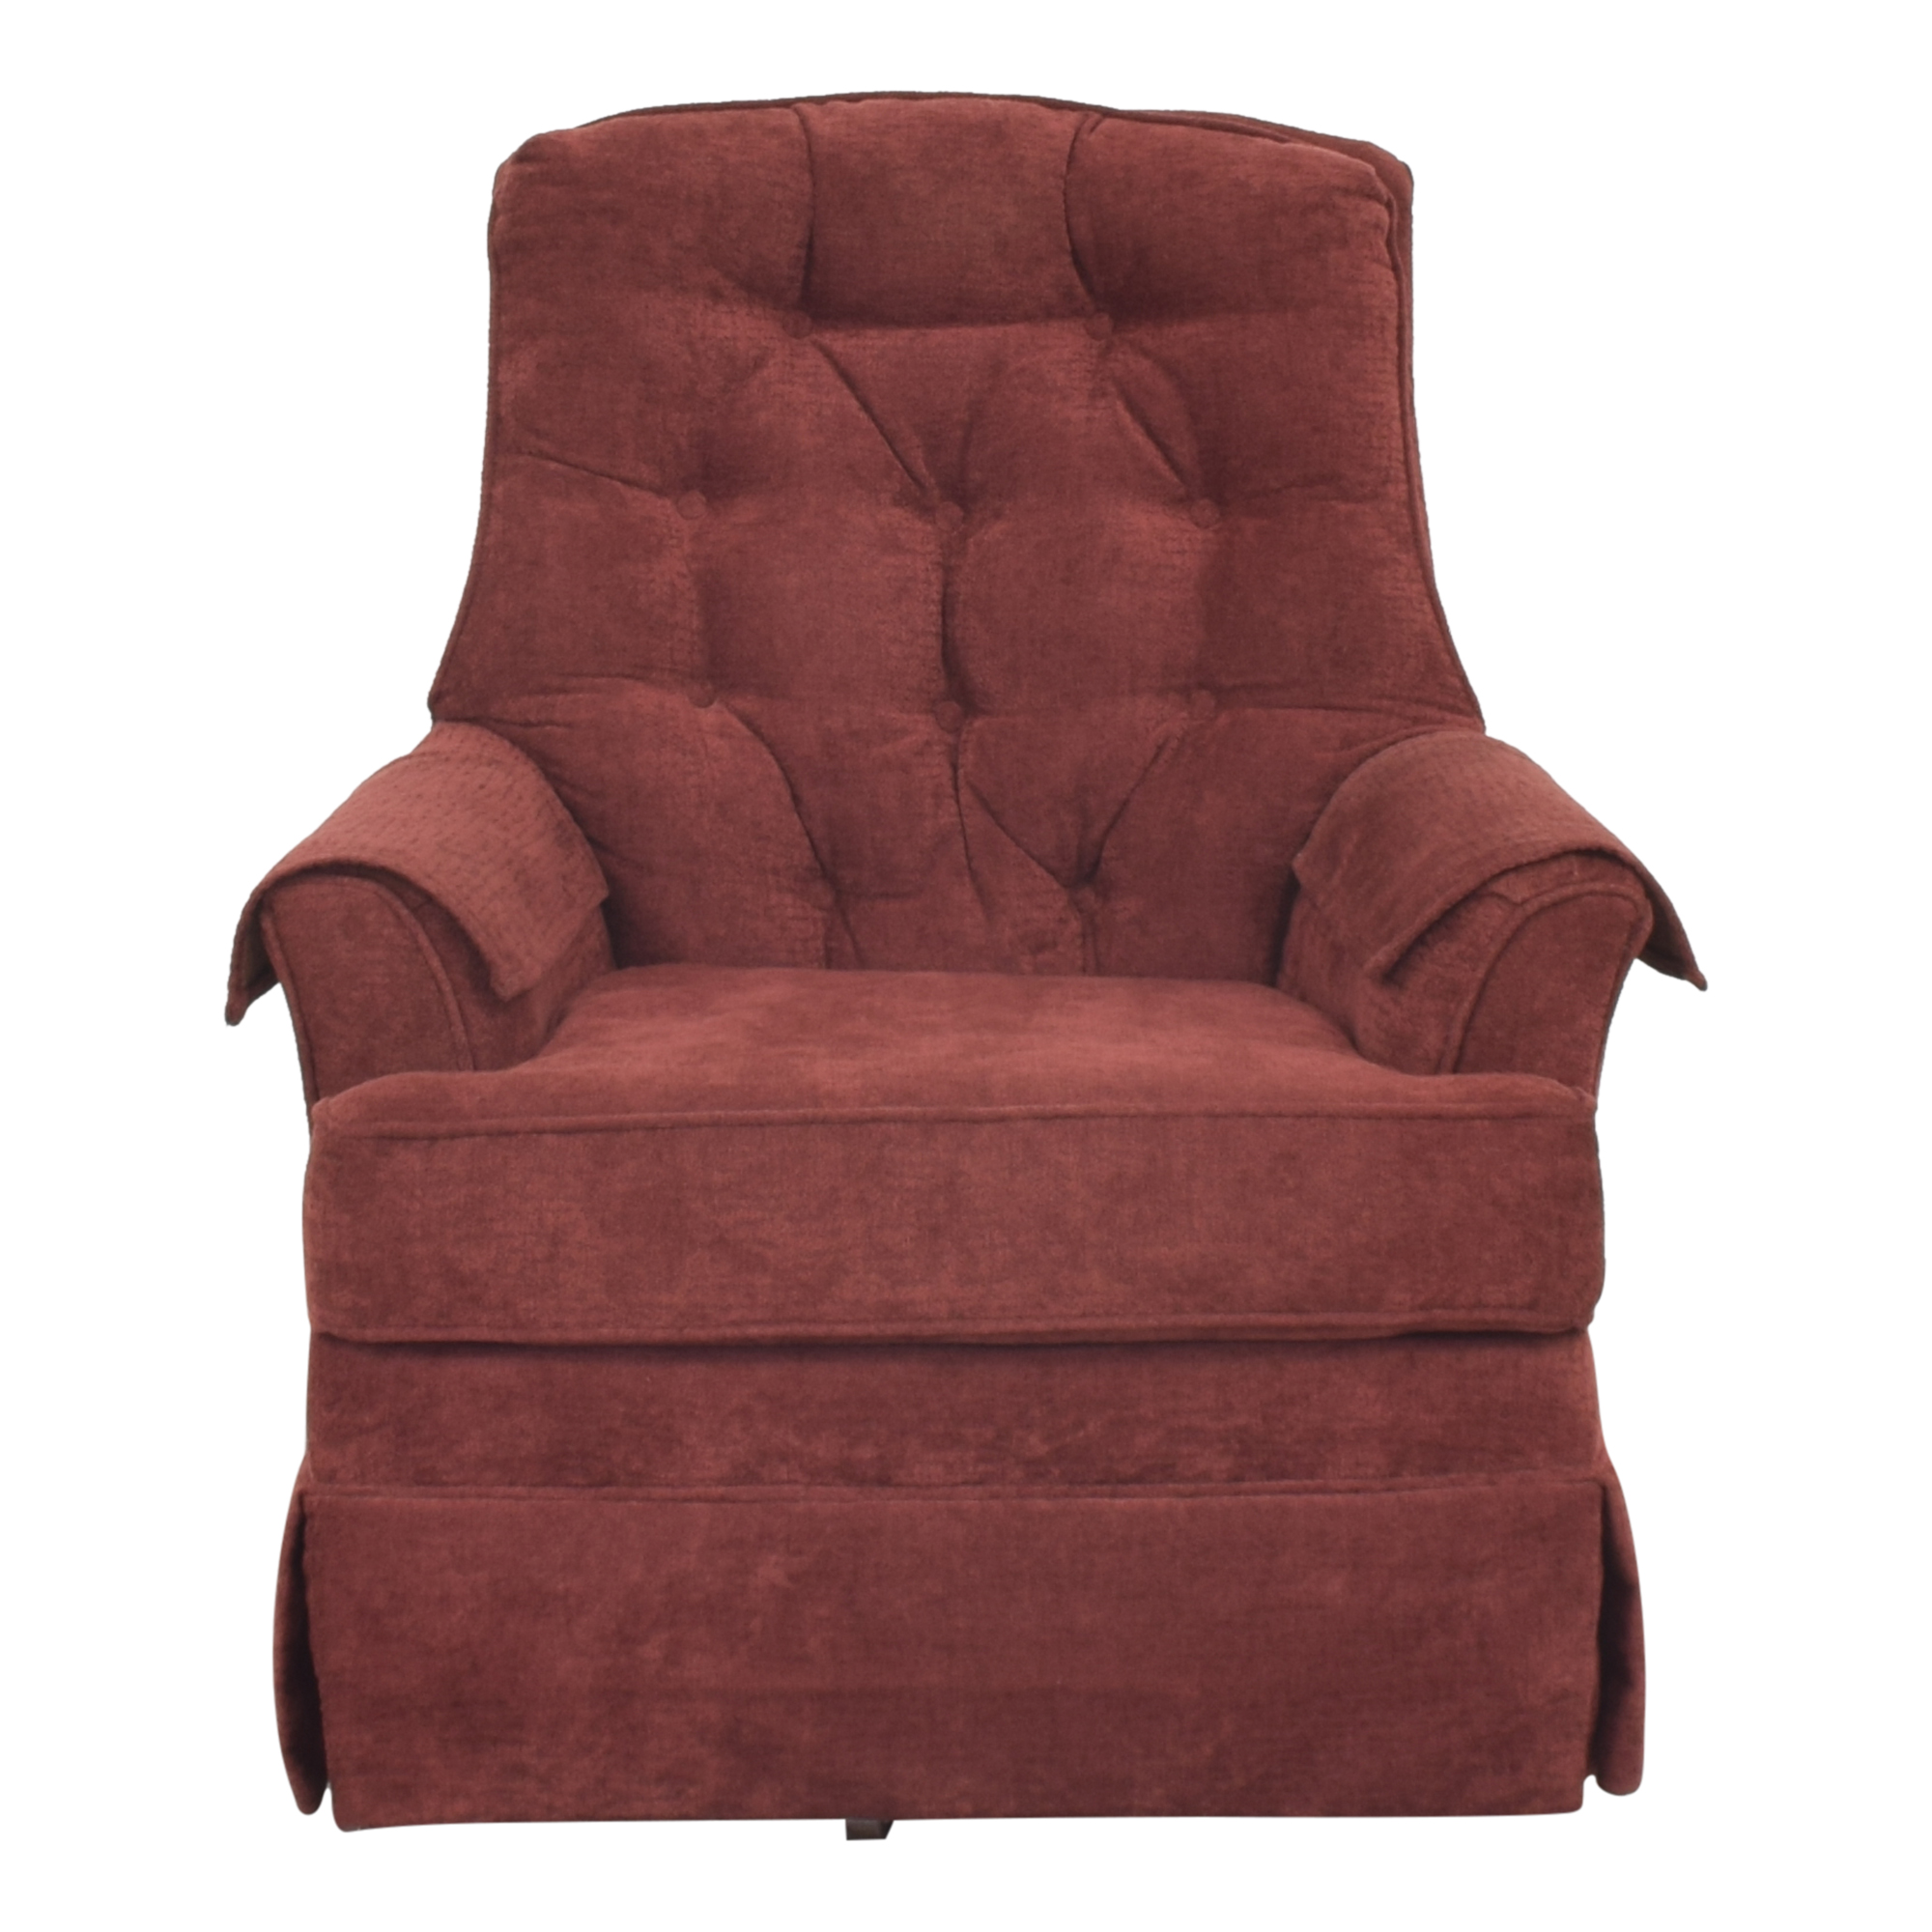 shop Rowe Furniture Tufted Swivel Chair Rowe Furniture Chairs